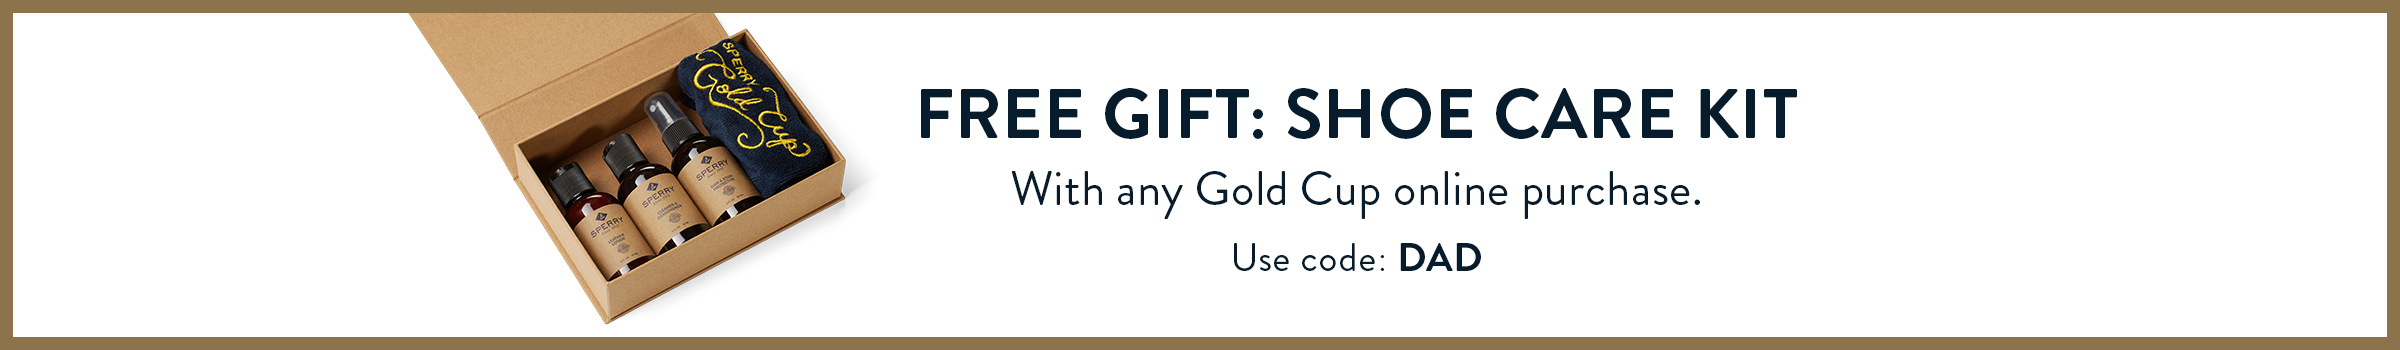 Free gift shoe care kit. With any gold cup online purchase. Use code DAD.